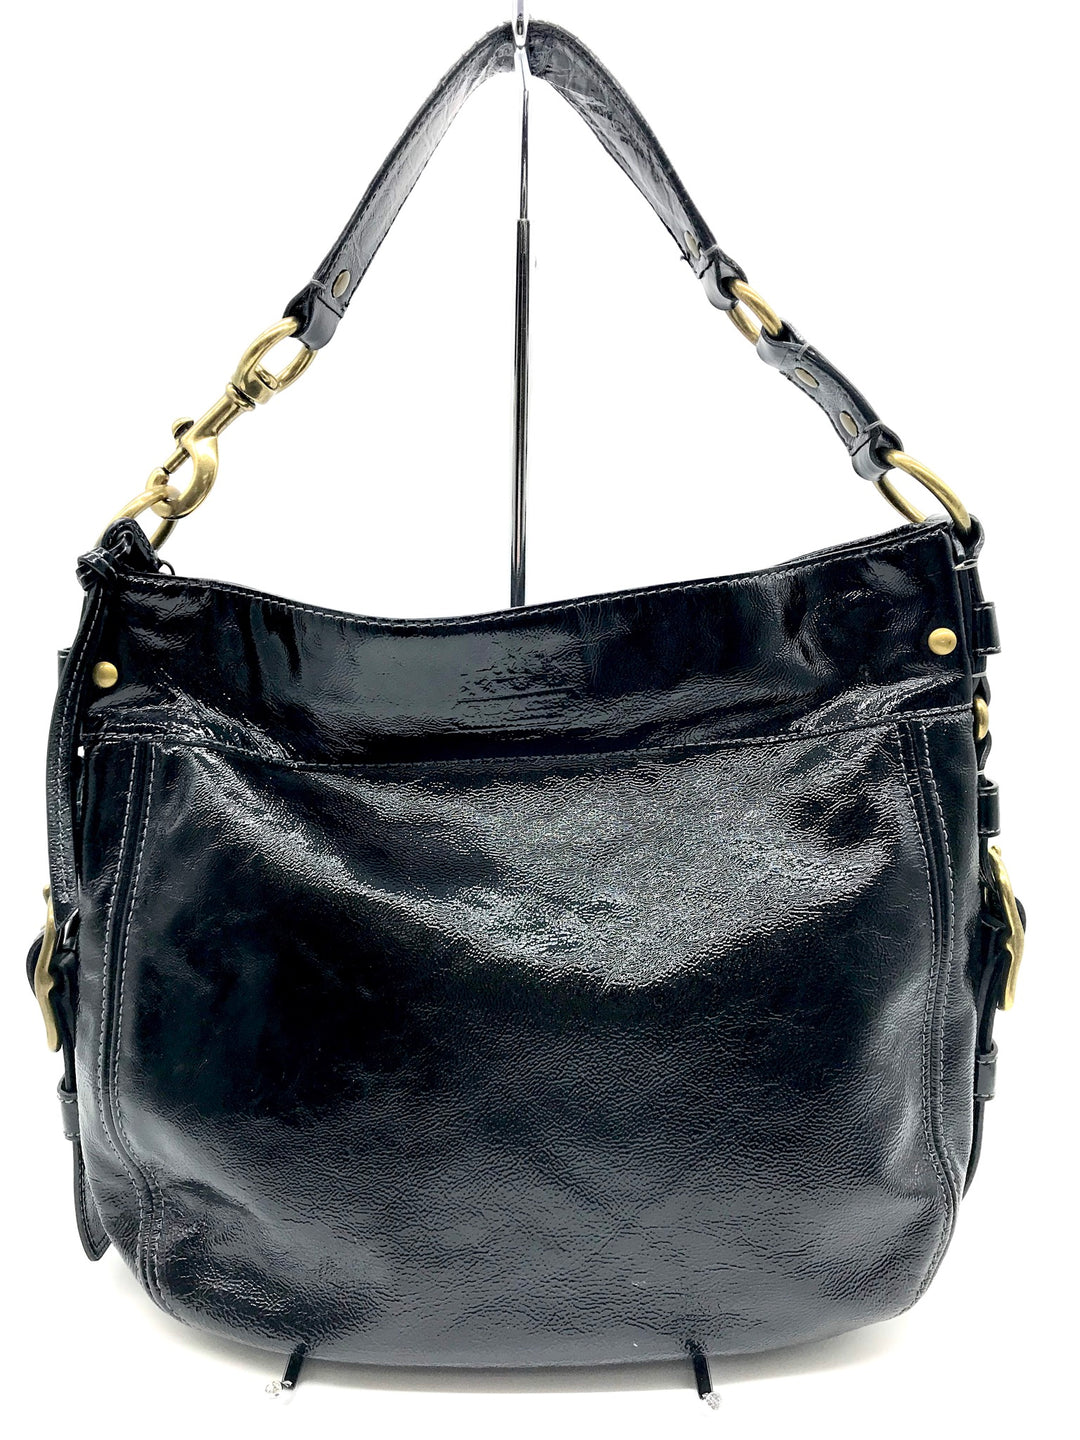 Primary Photo - BRAND: COACH <BR>STYLE: HANDBAG DESIGNER <BR>COLOR: BLACK <BR>SIZE: LARGE <BR>SKU: 262-26275-64721<BR>GENTLE WEAR SHOWS, CRACKS AROUND THE EDGES OF THE STRAP AND SOME STAIN SPOTS ON THE INTERIOR LINING. OVERALL IN GOOD SHAPE AND CONDITION. <BR>DESIGNER BRAND - FINAL SALE